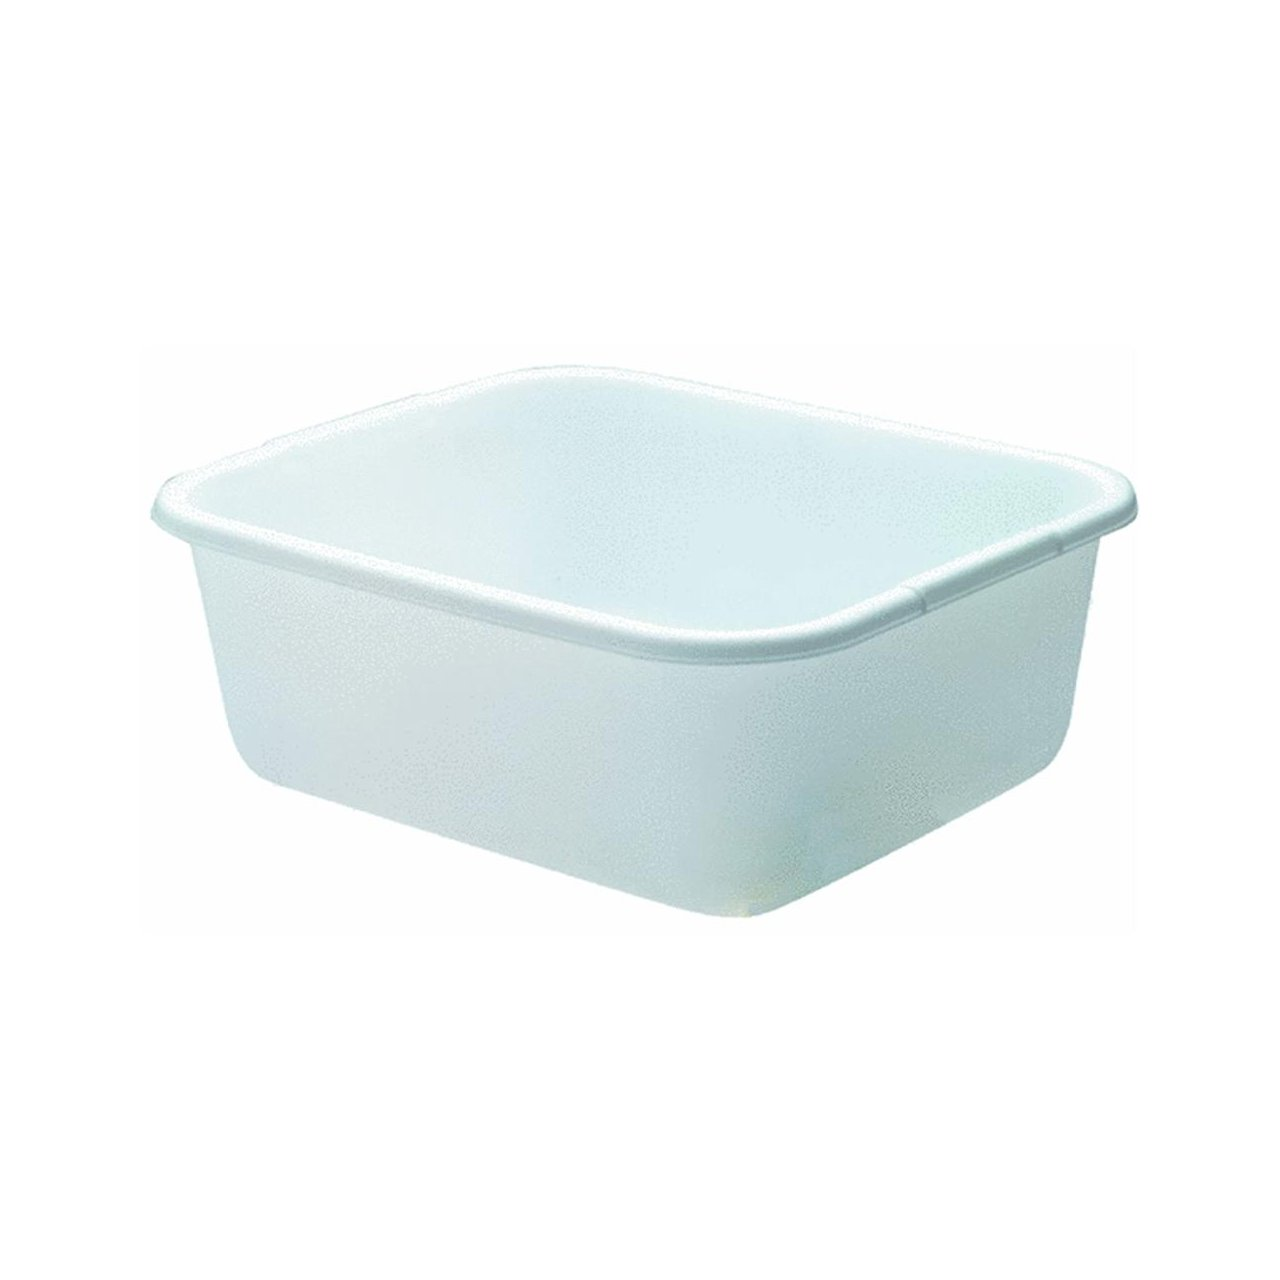 Rubbermaid 2951ARWHT 11.4 Quart White Rectangle Dishpan Rubbermaid Inc